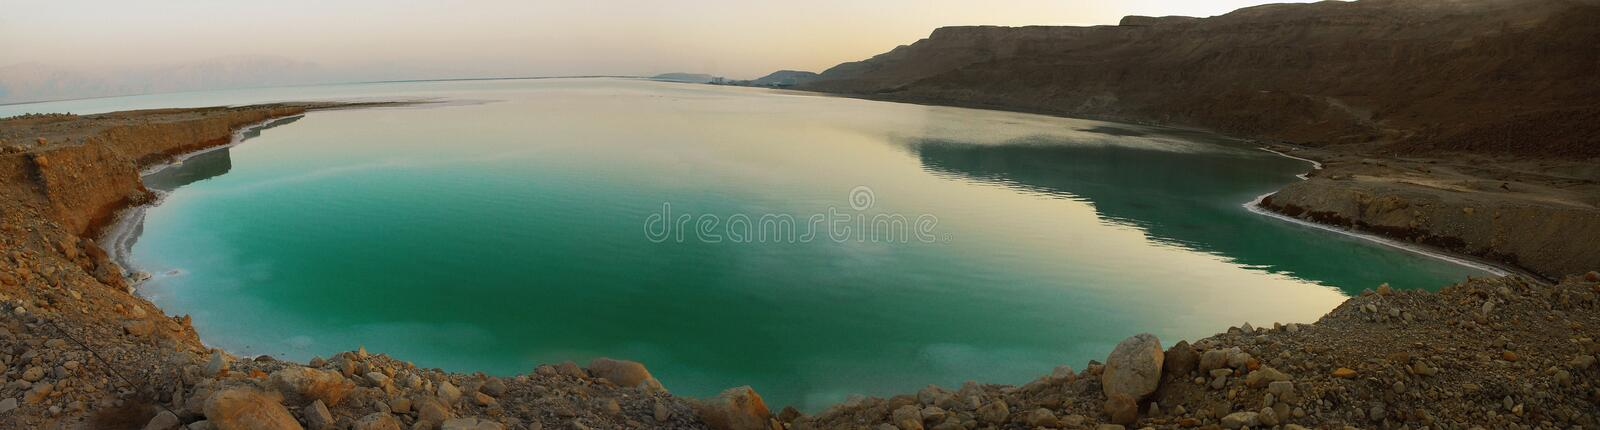 Panorama of Dead Sea at sunset royalty free stock images